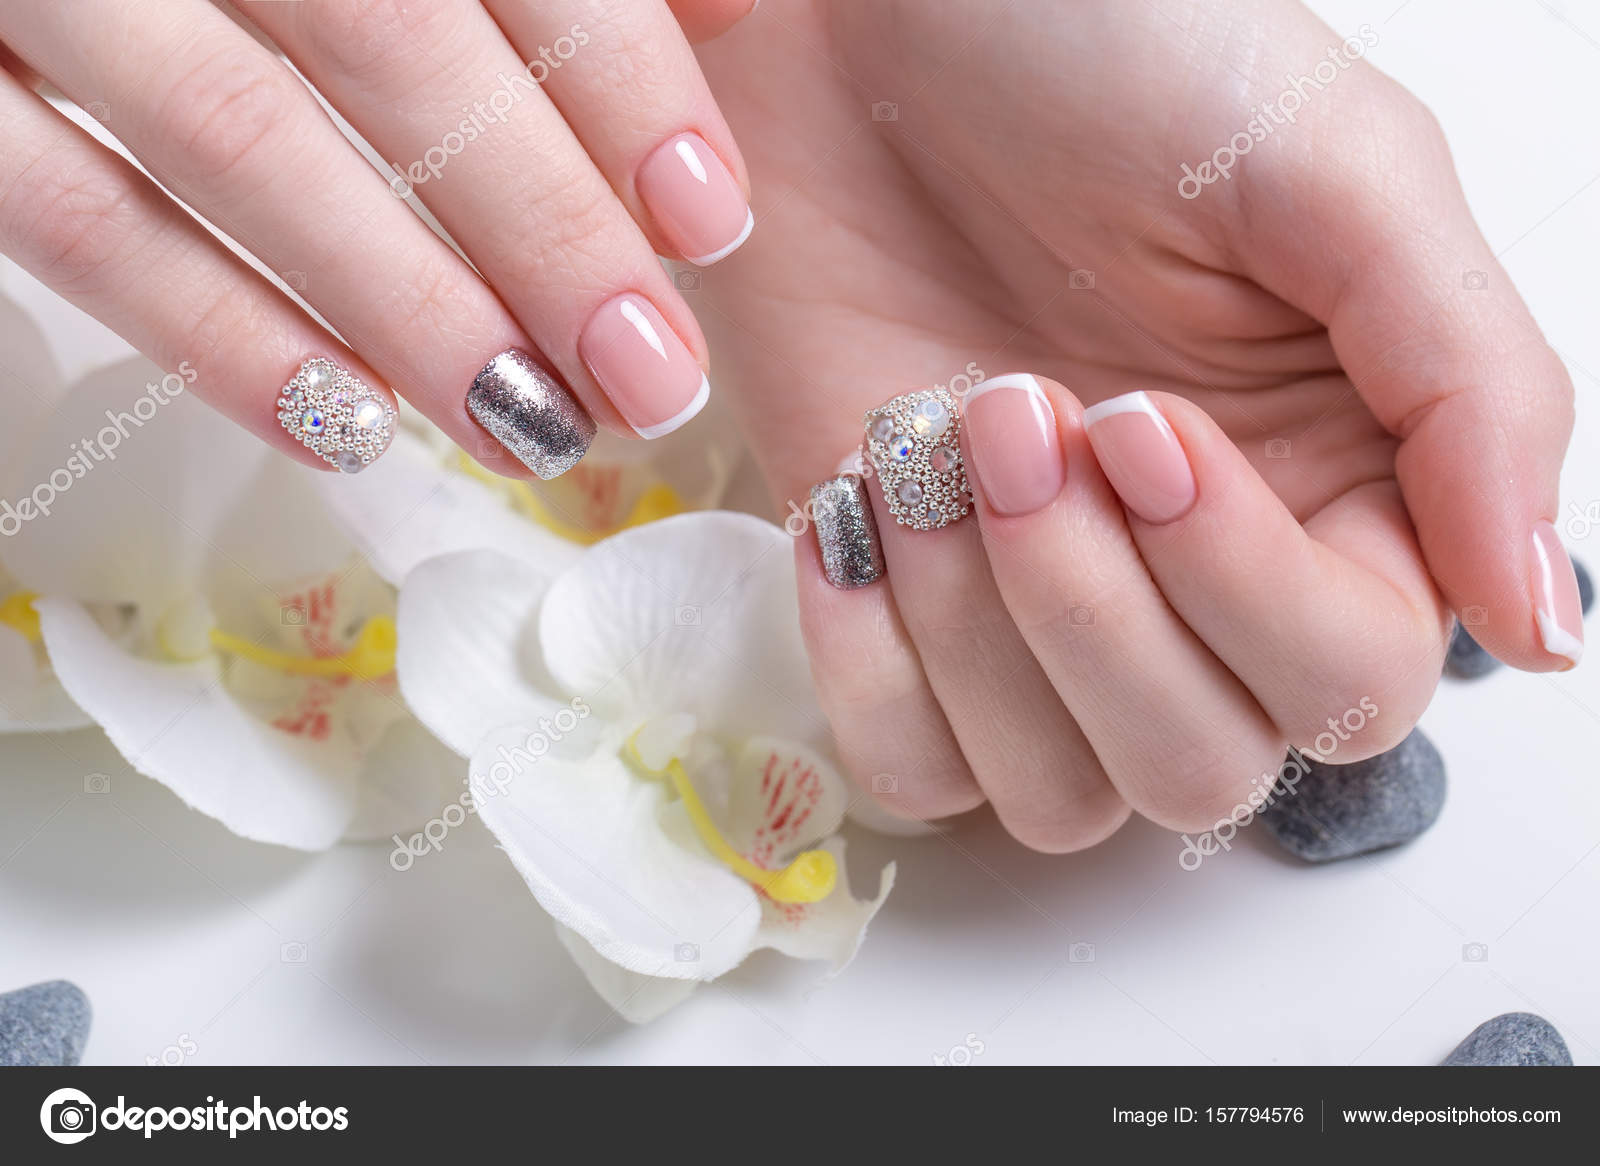 Beautiful Classic French Manicure With Rhinestones On Female Hand Close Up Picture Taken In The Studio Background Of Flowers Photo By Kobrin